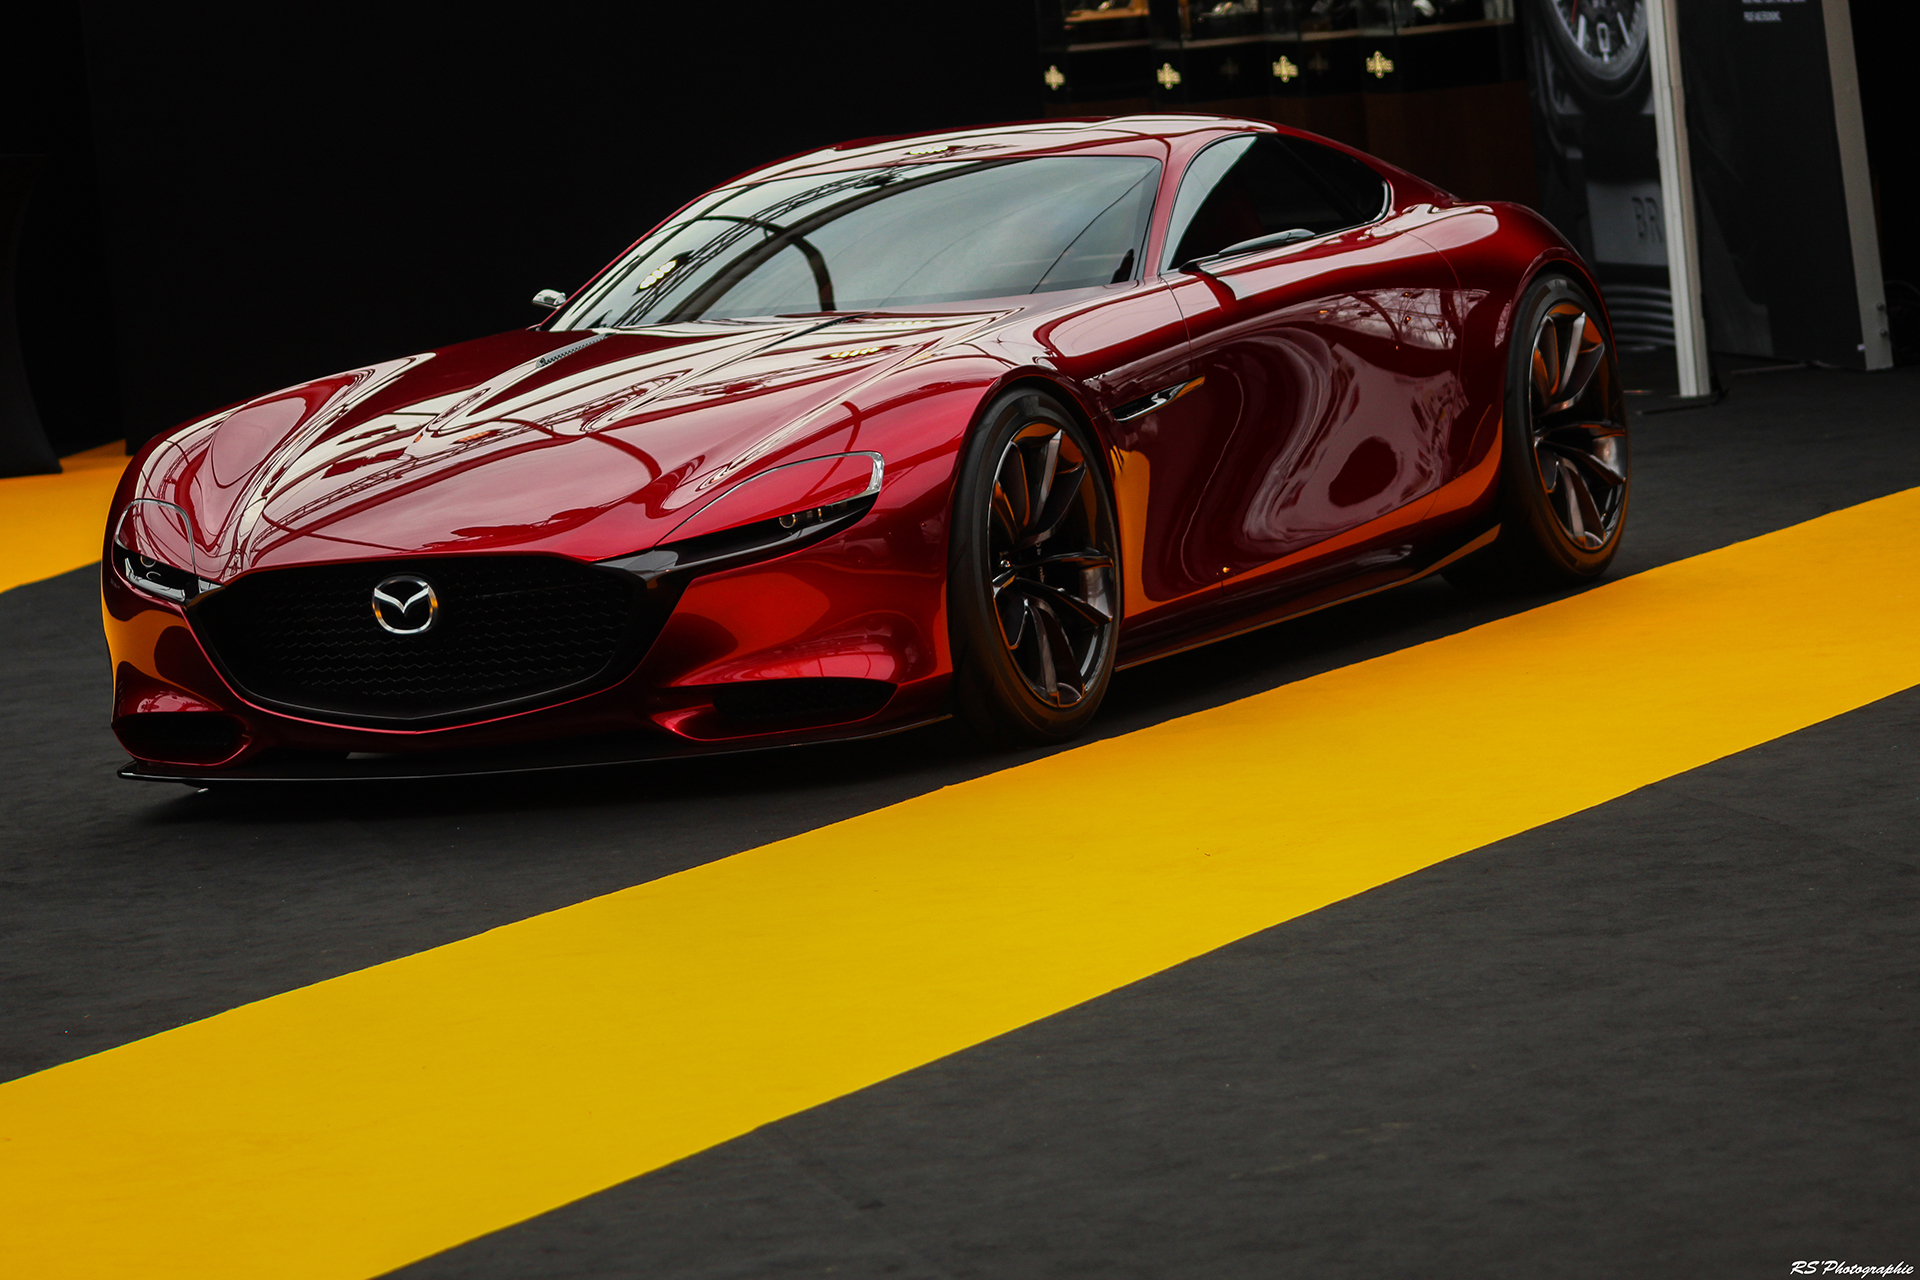 Mazda RX Vision - avant / front - Exposition Concept cars 2016 - Arnaud Demasier RS Photographie